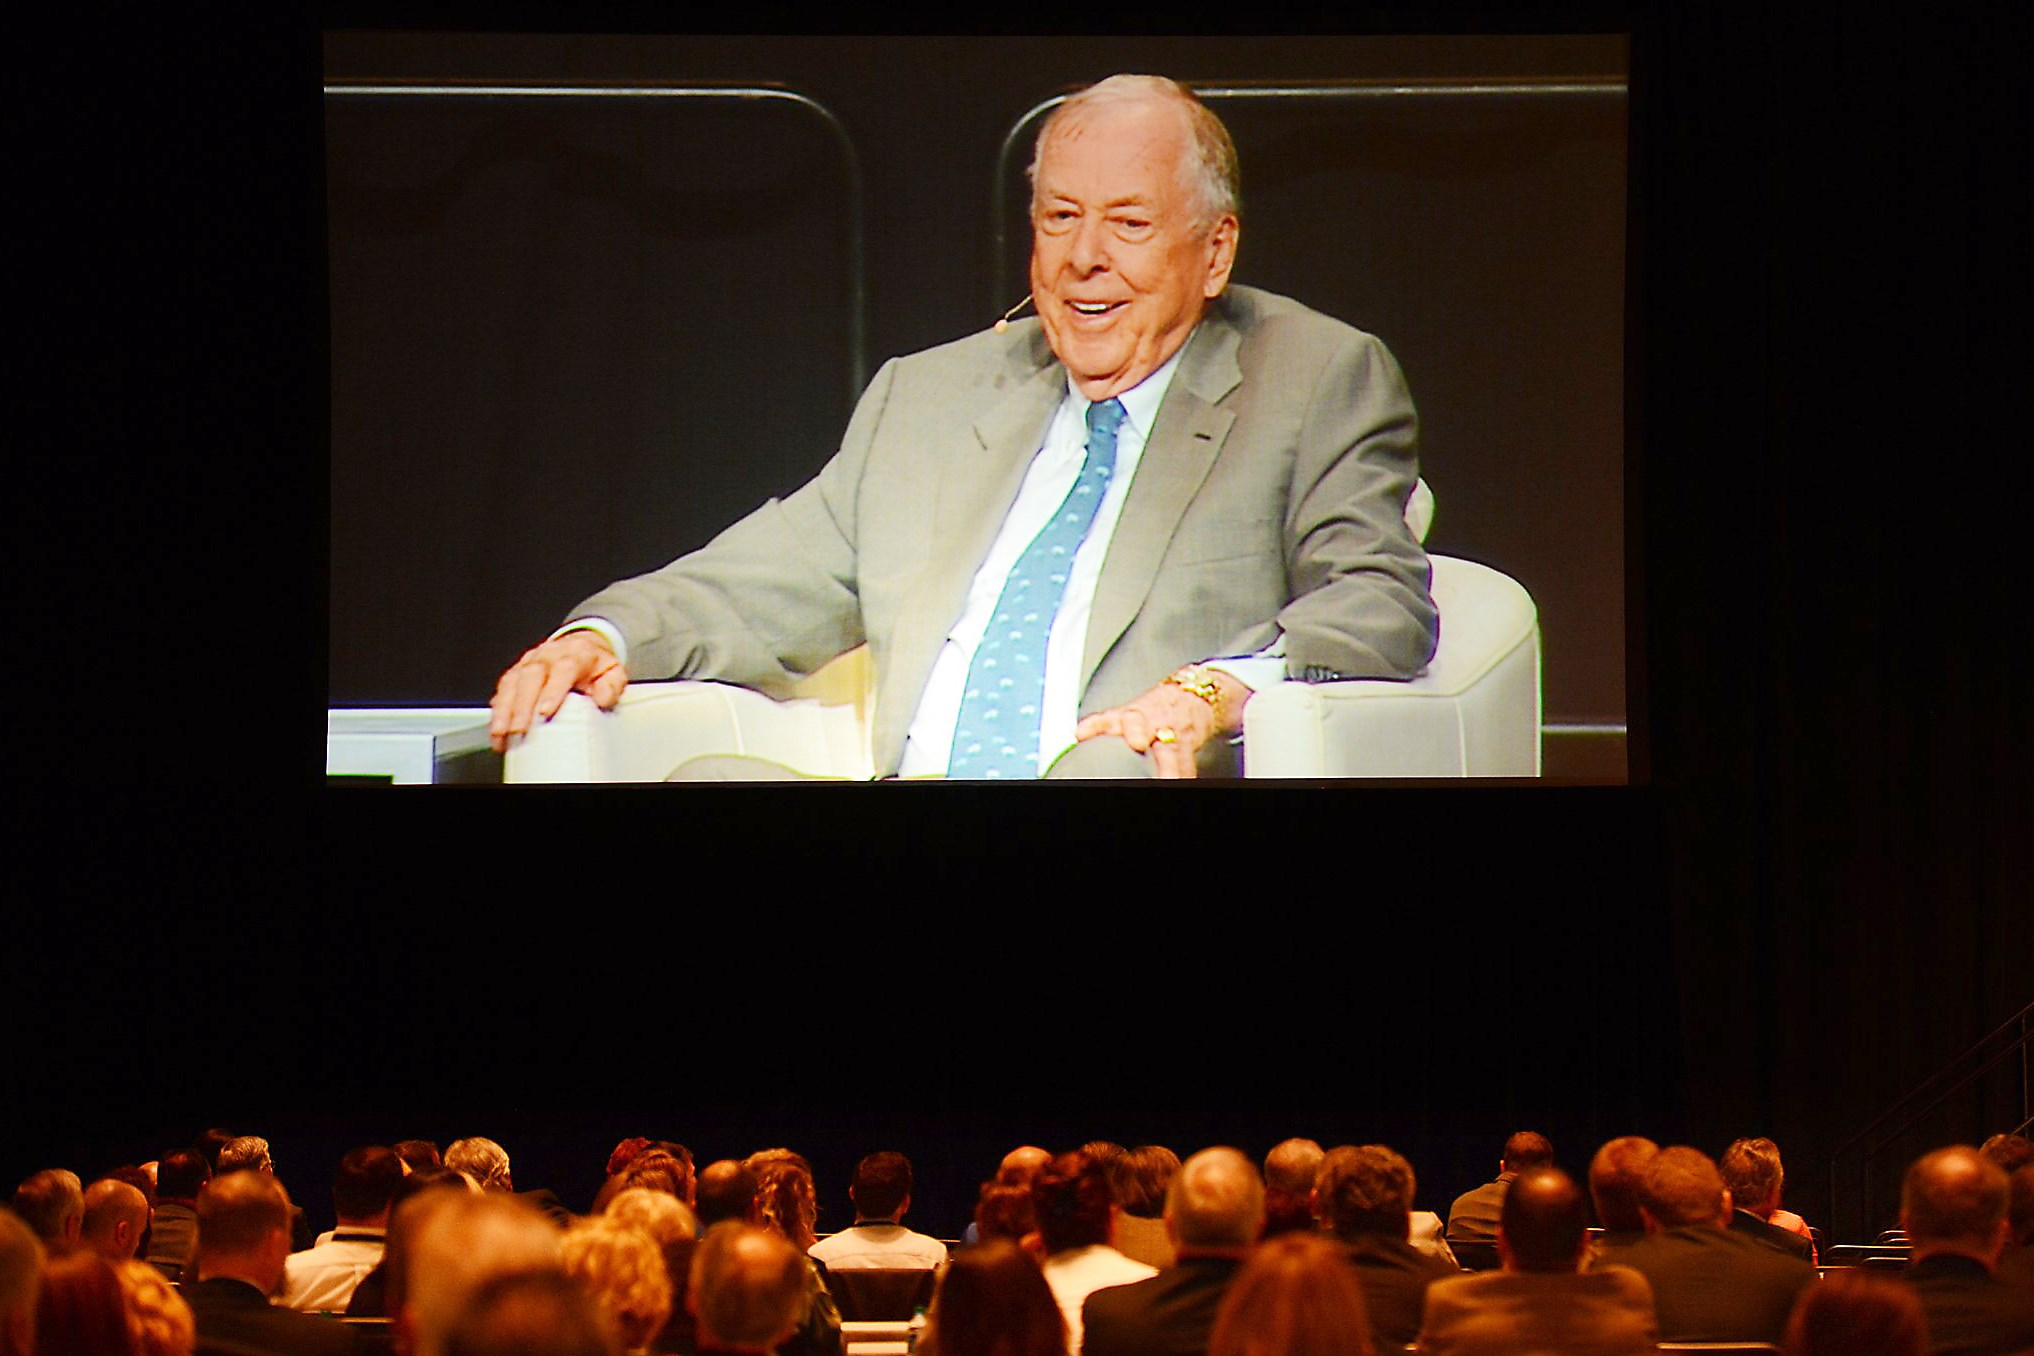 T. Boone Pickens speaks to the crowd during a Pennsylvania Department of Labor and Industry summit Monday.